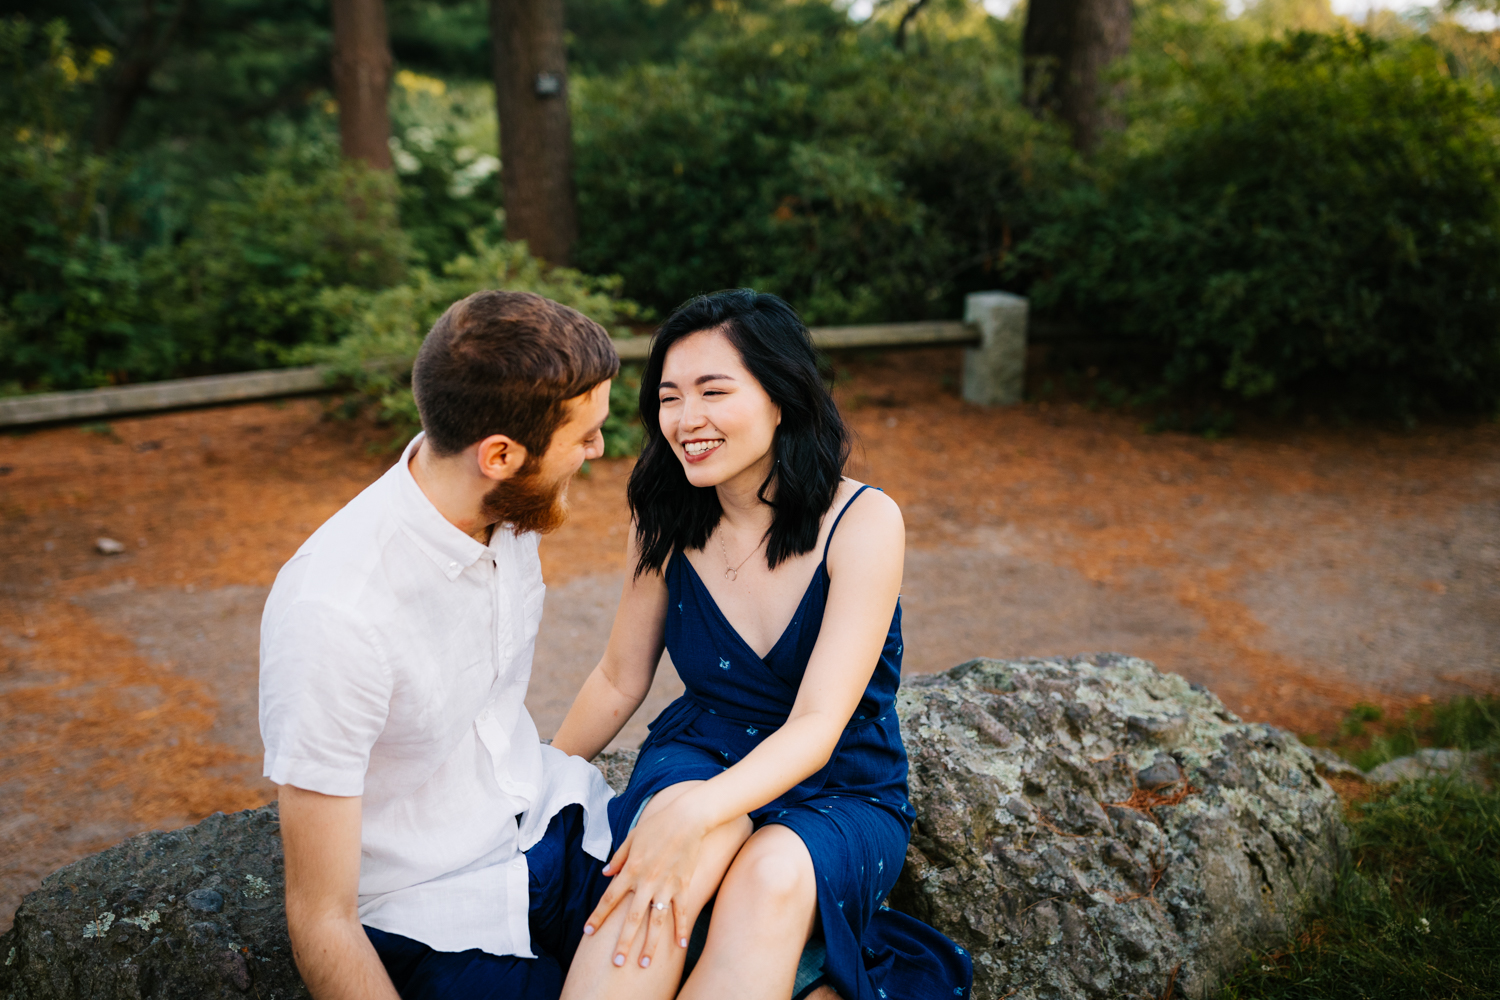 new-england-arnold-arboretum-engagement-photographer-boston-fun-natural-massachusetts-andrea-van-orsouw-photography-adventurous.jpg